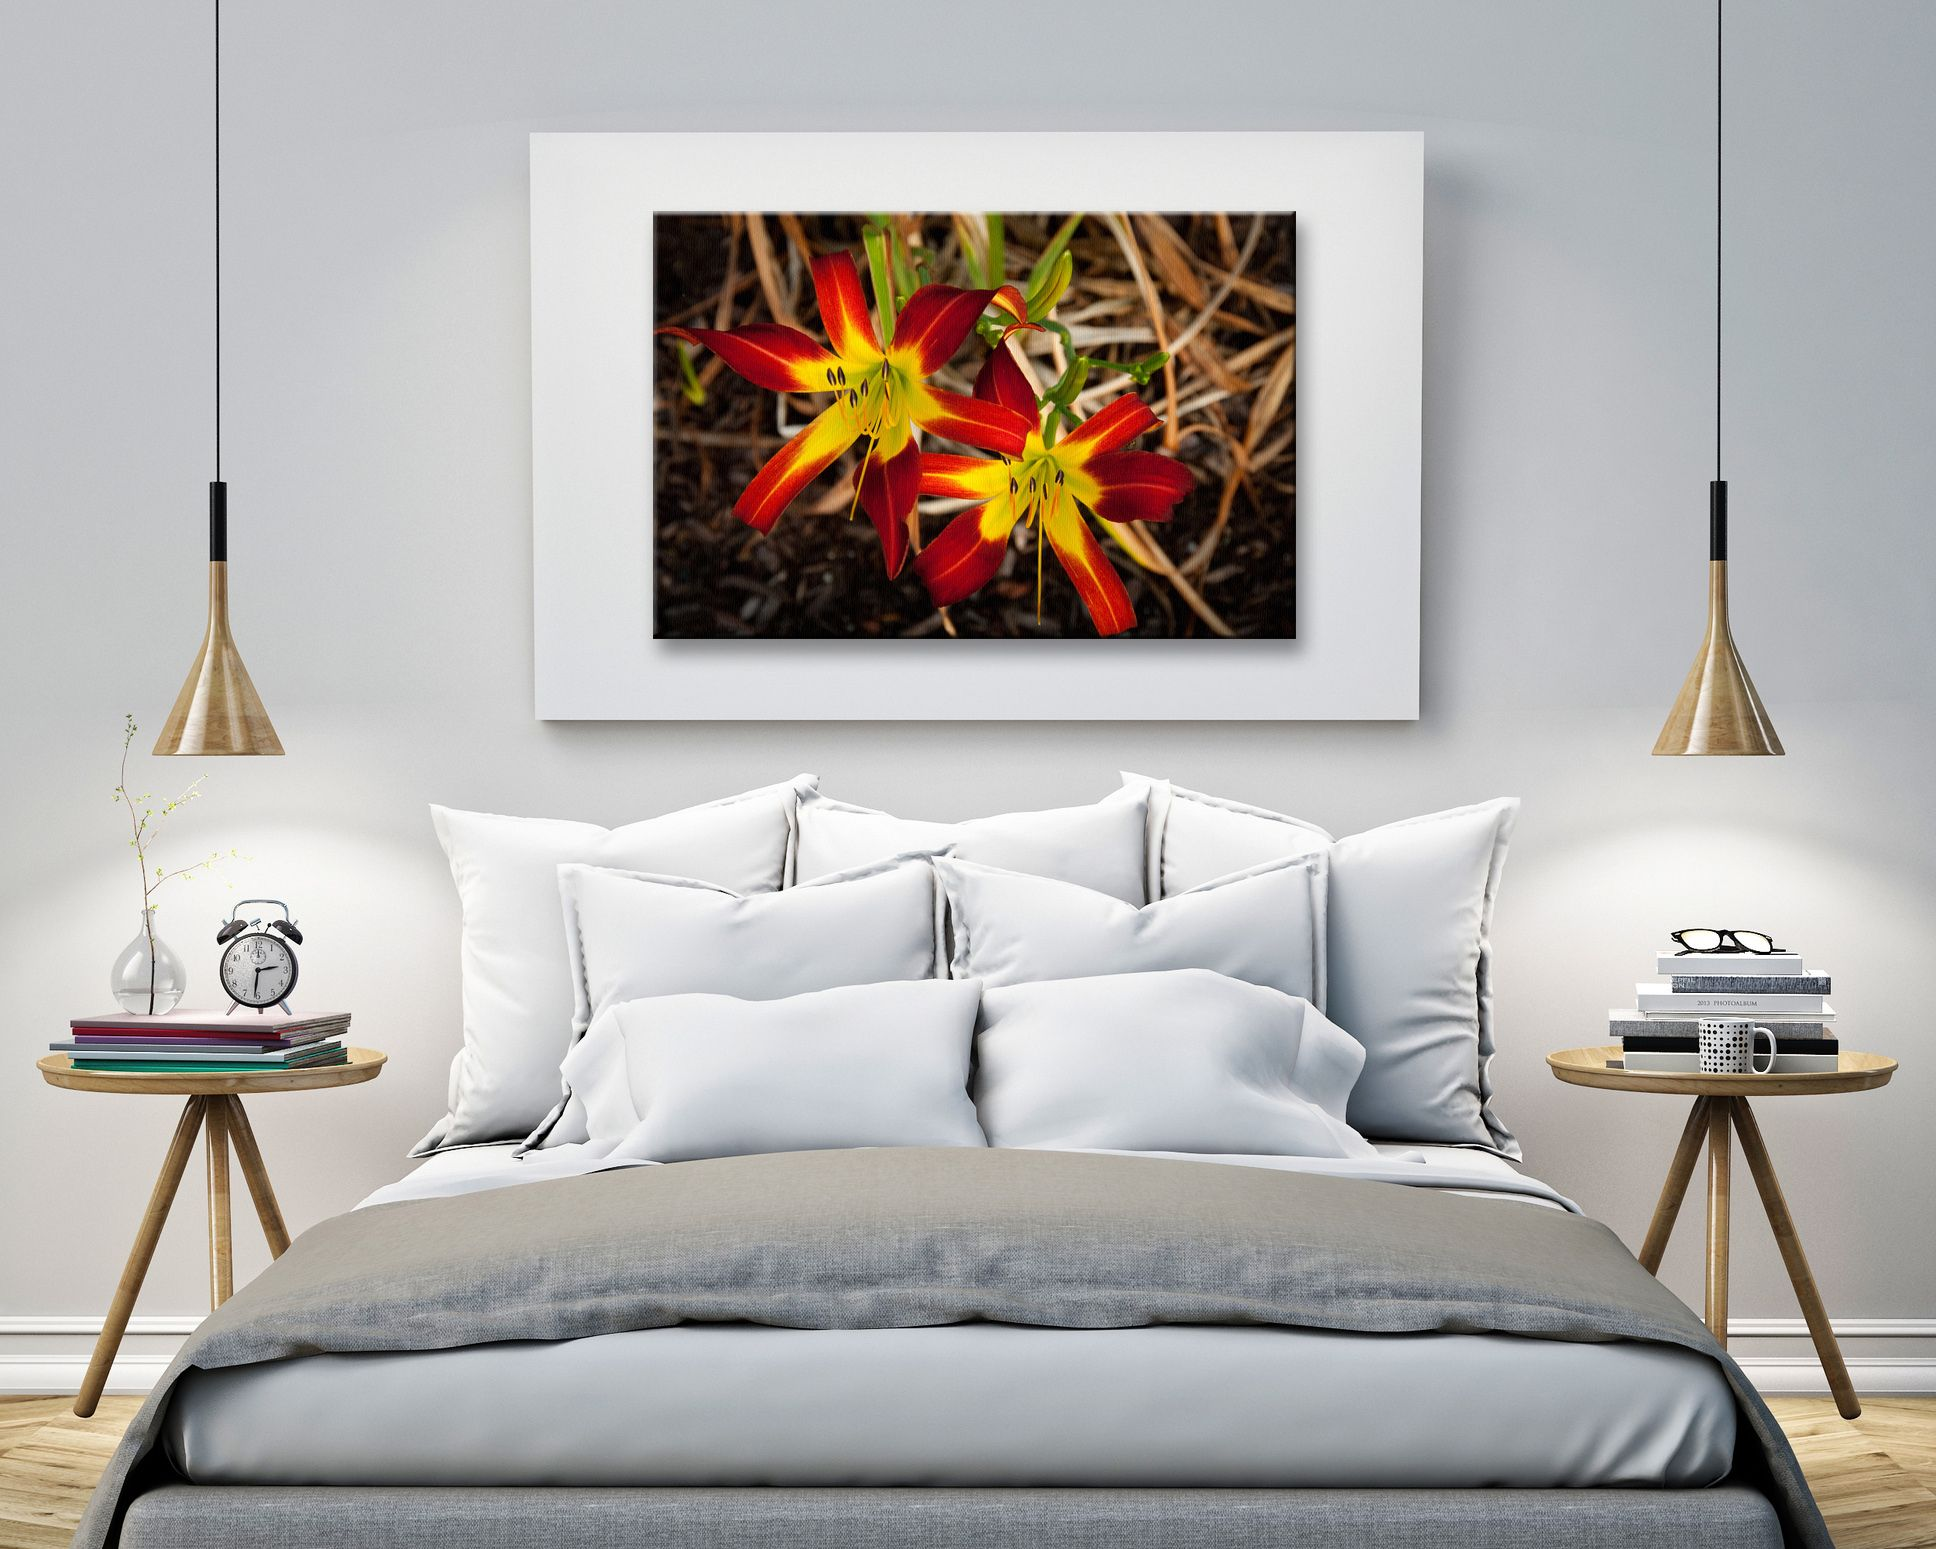 Royal Sunset Lily Nature Photography Canvas Prints Are Now Available On Houzz Nature Photos As Wall Art Look Great In Both Homes An Home Home Decor Room Decor